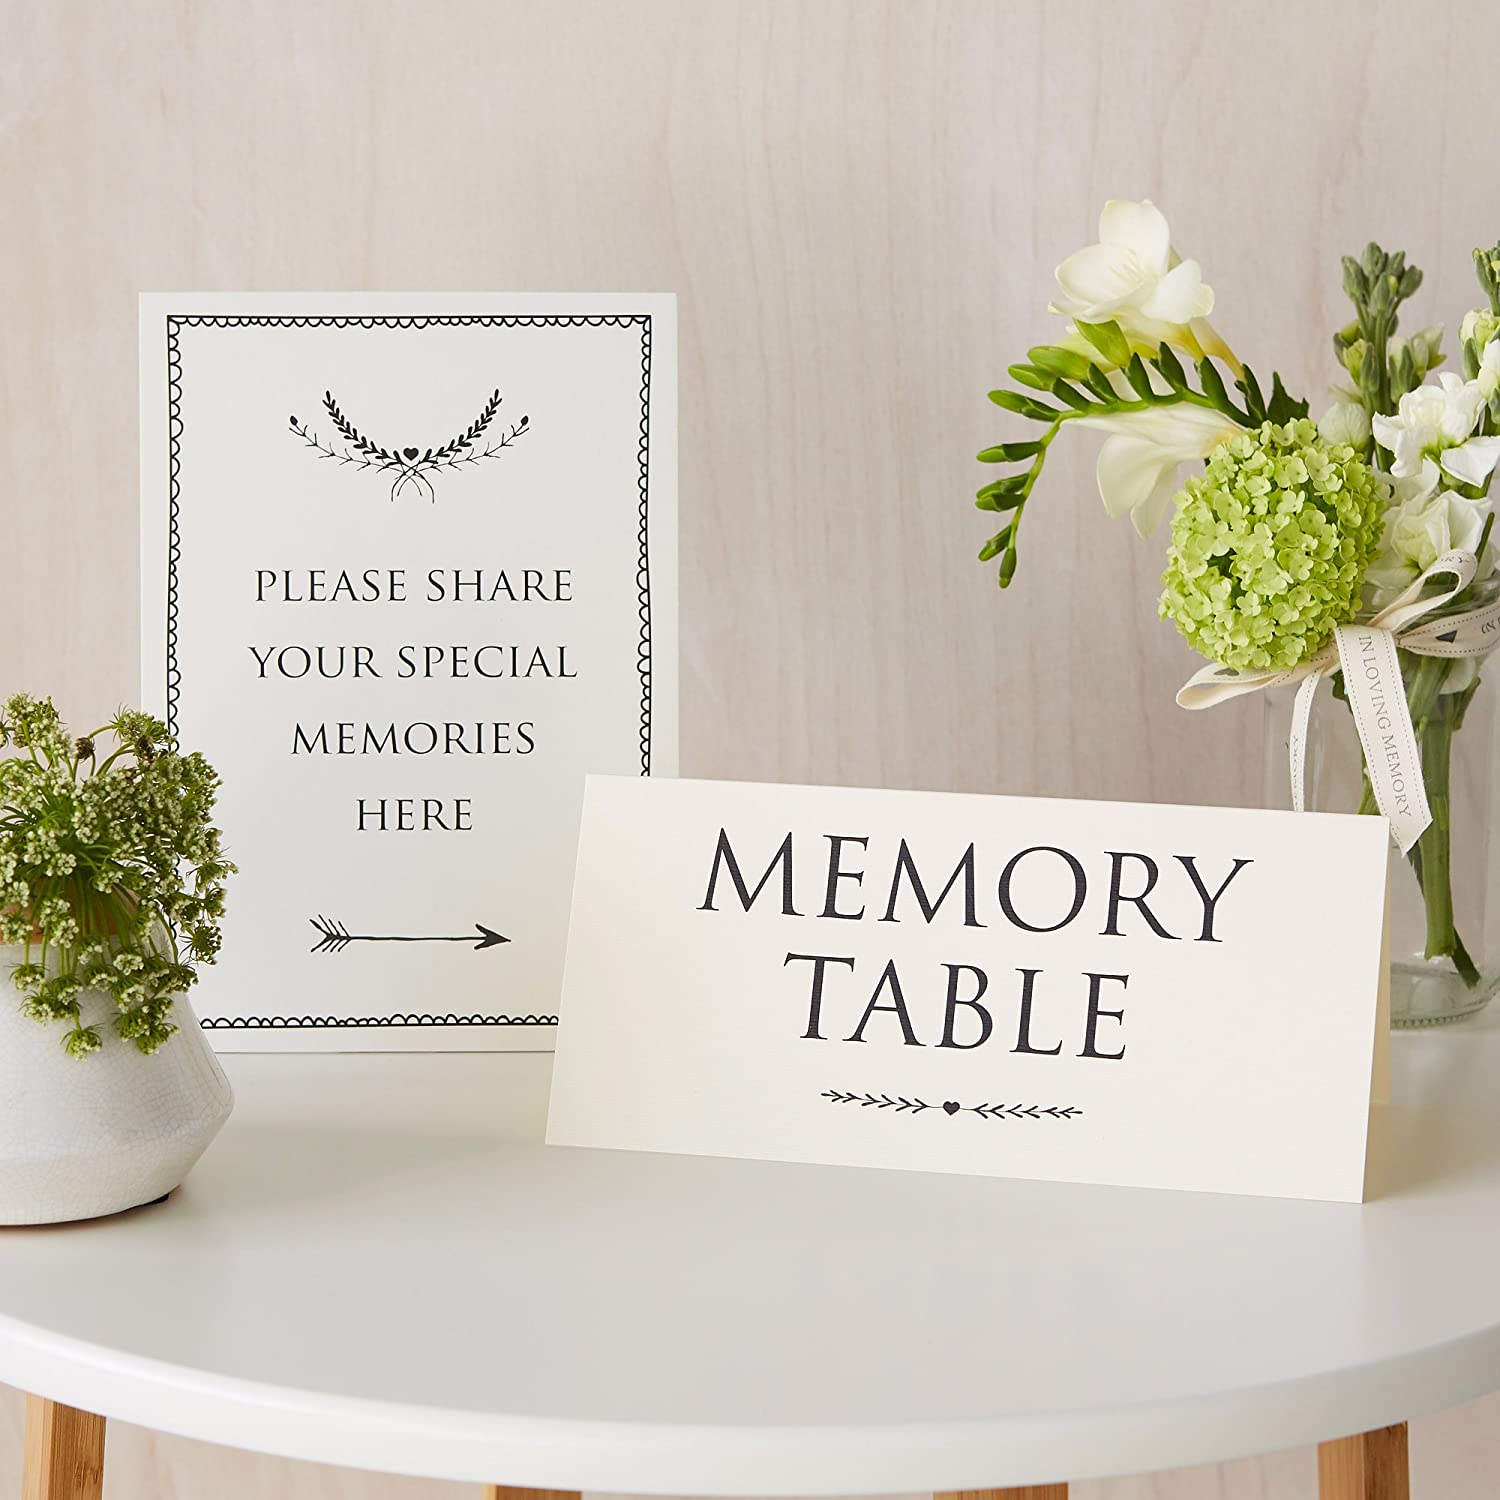 Angel Dove Set Of 2 Card Signs Memory Table Share Your Memories Ideal For Funeral Condolence Book Memorial Celebration Of Life Amazon Co Uk Kitchen Home